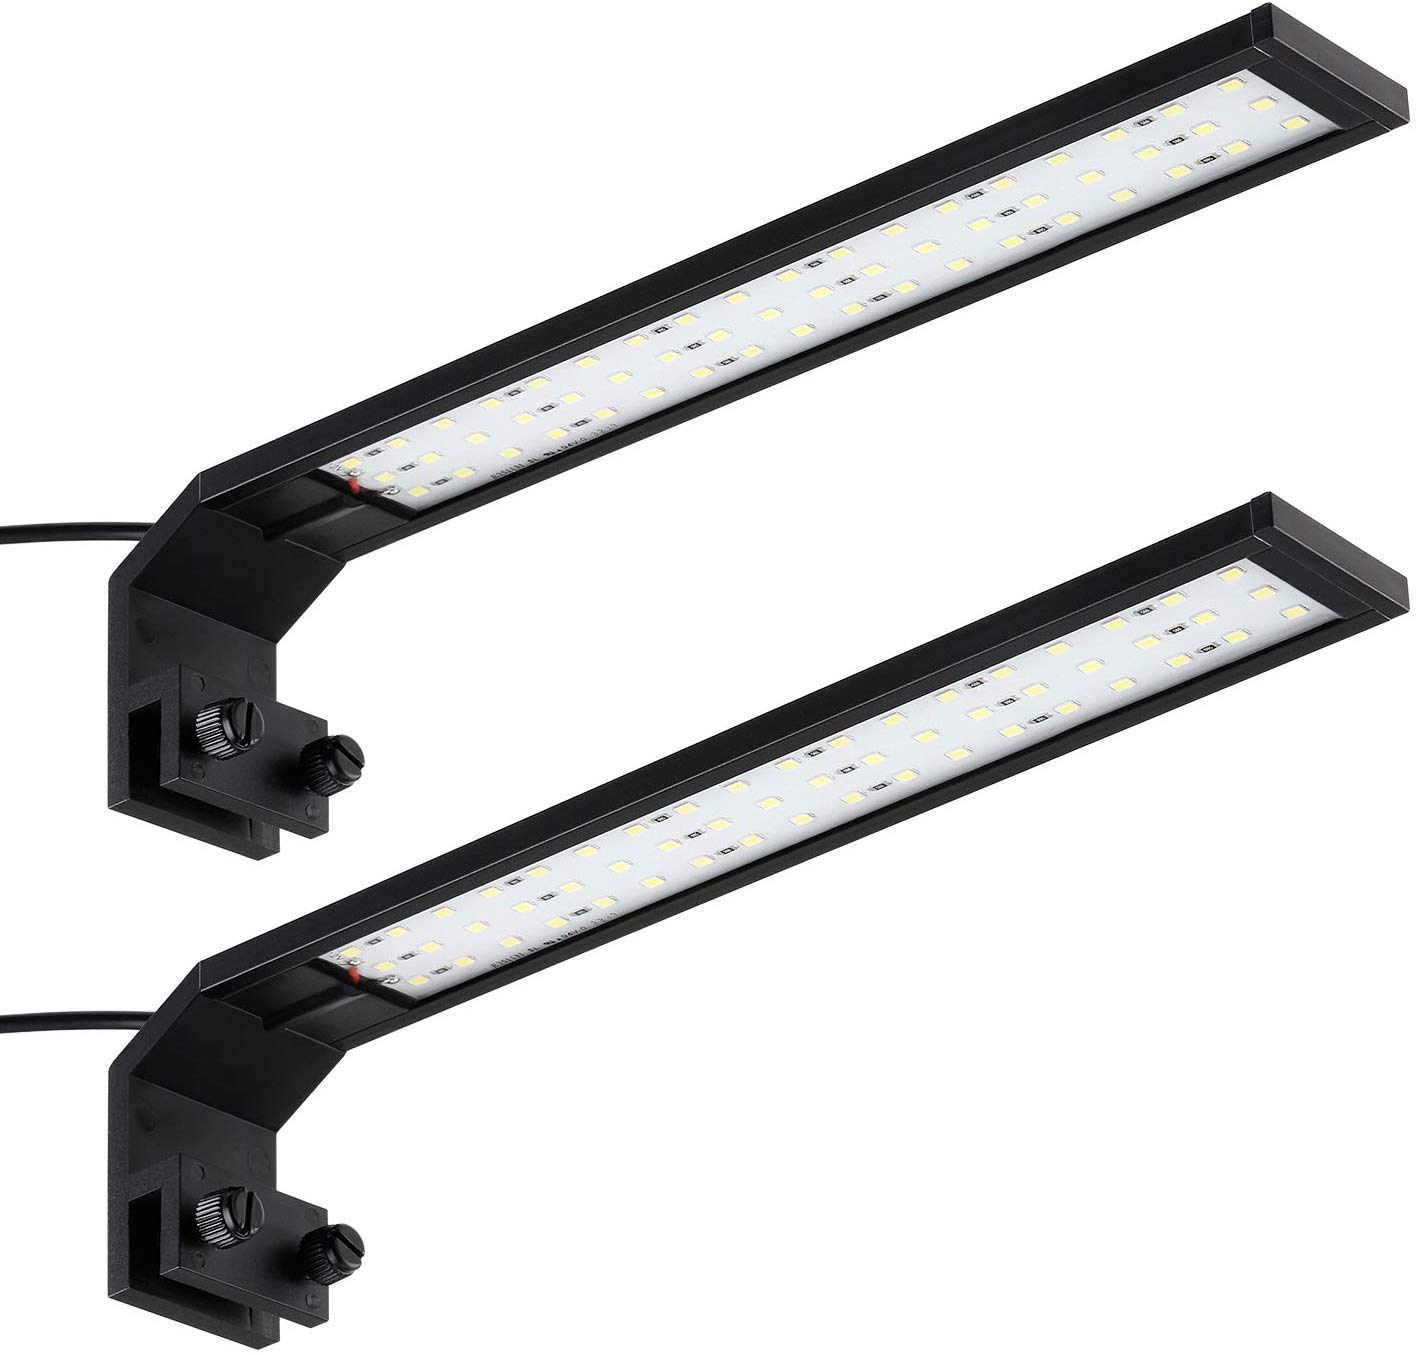 TORCHSTAR LED Aquarium Light, 400lm Ultra Bright Fish Tank Light with Adjustable Clip, IP65 Waterproof Rating, for Freshwater AquariumPlants, Indoor Water Garden, Pack of 2